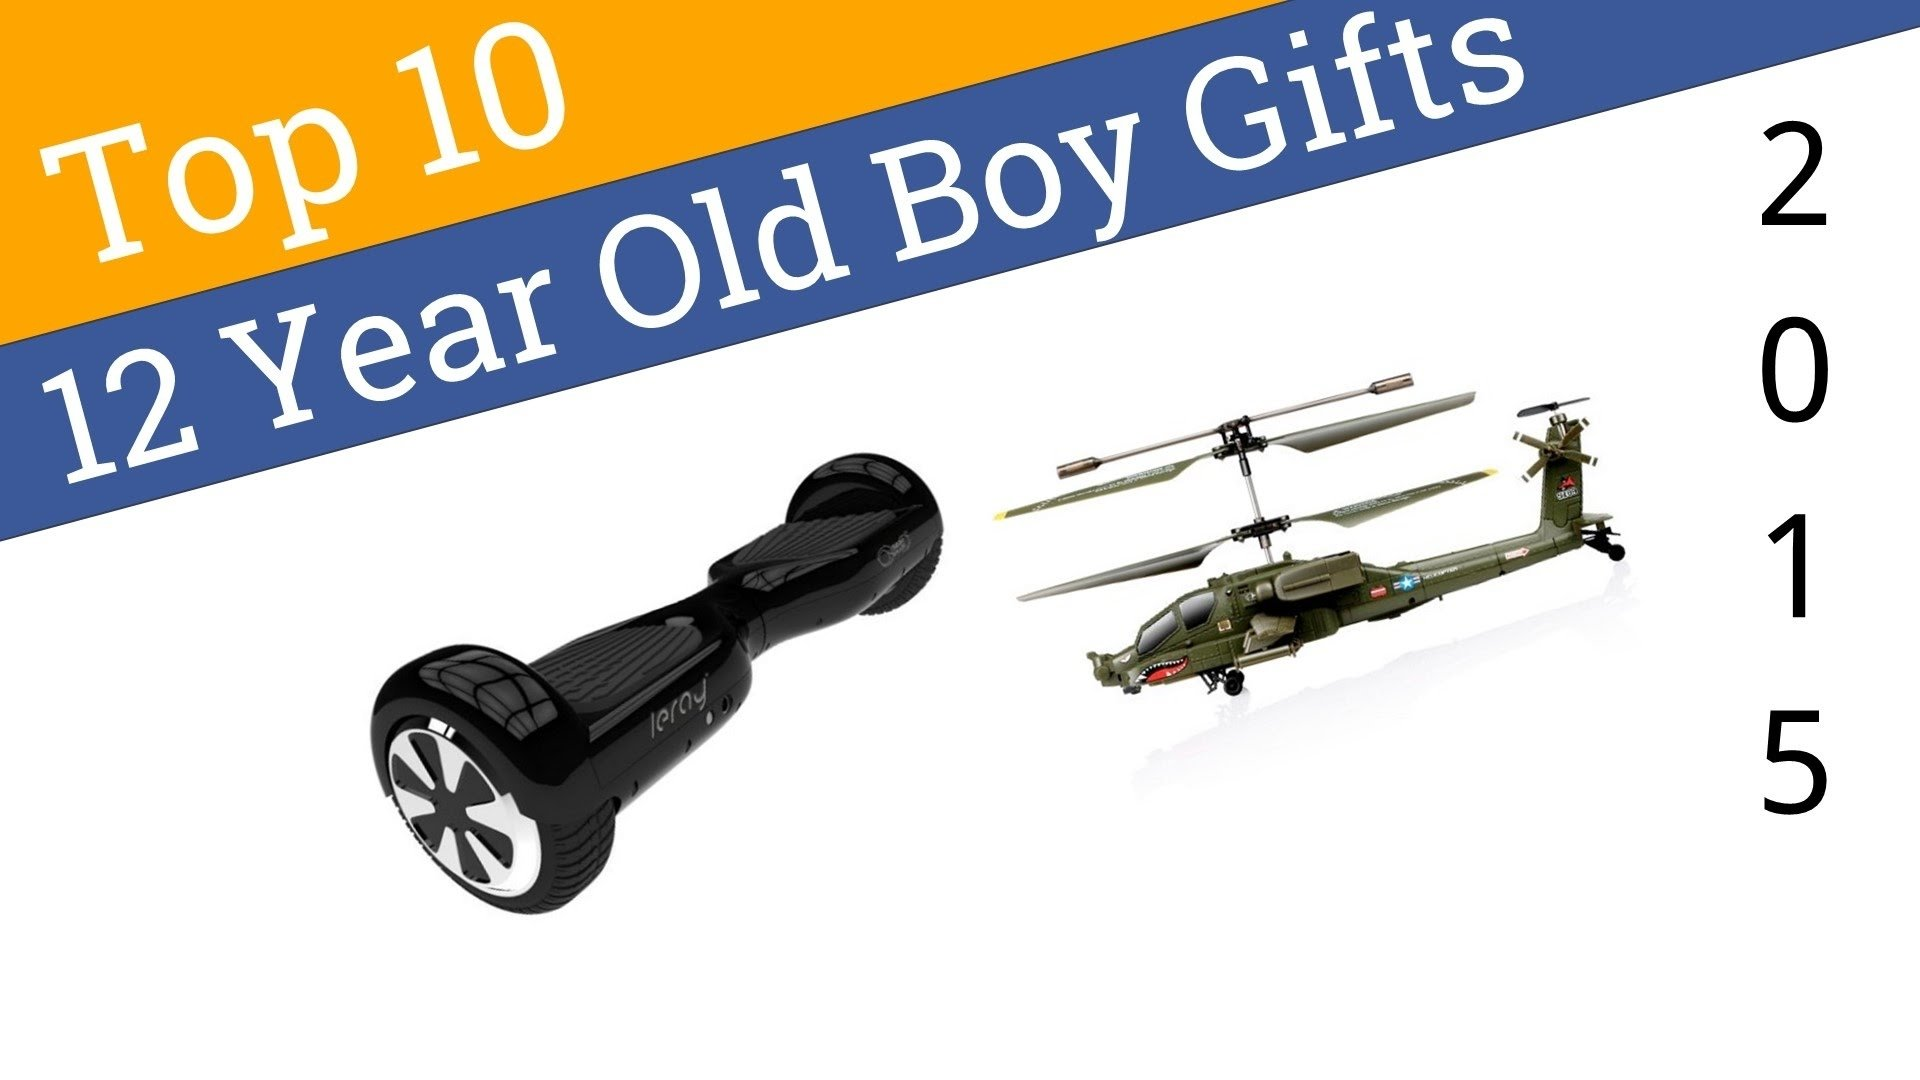 10 Wonderful Birthday Gift Ideas For 12 Year Old Boy Best